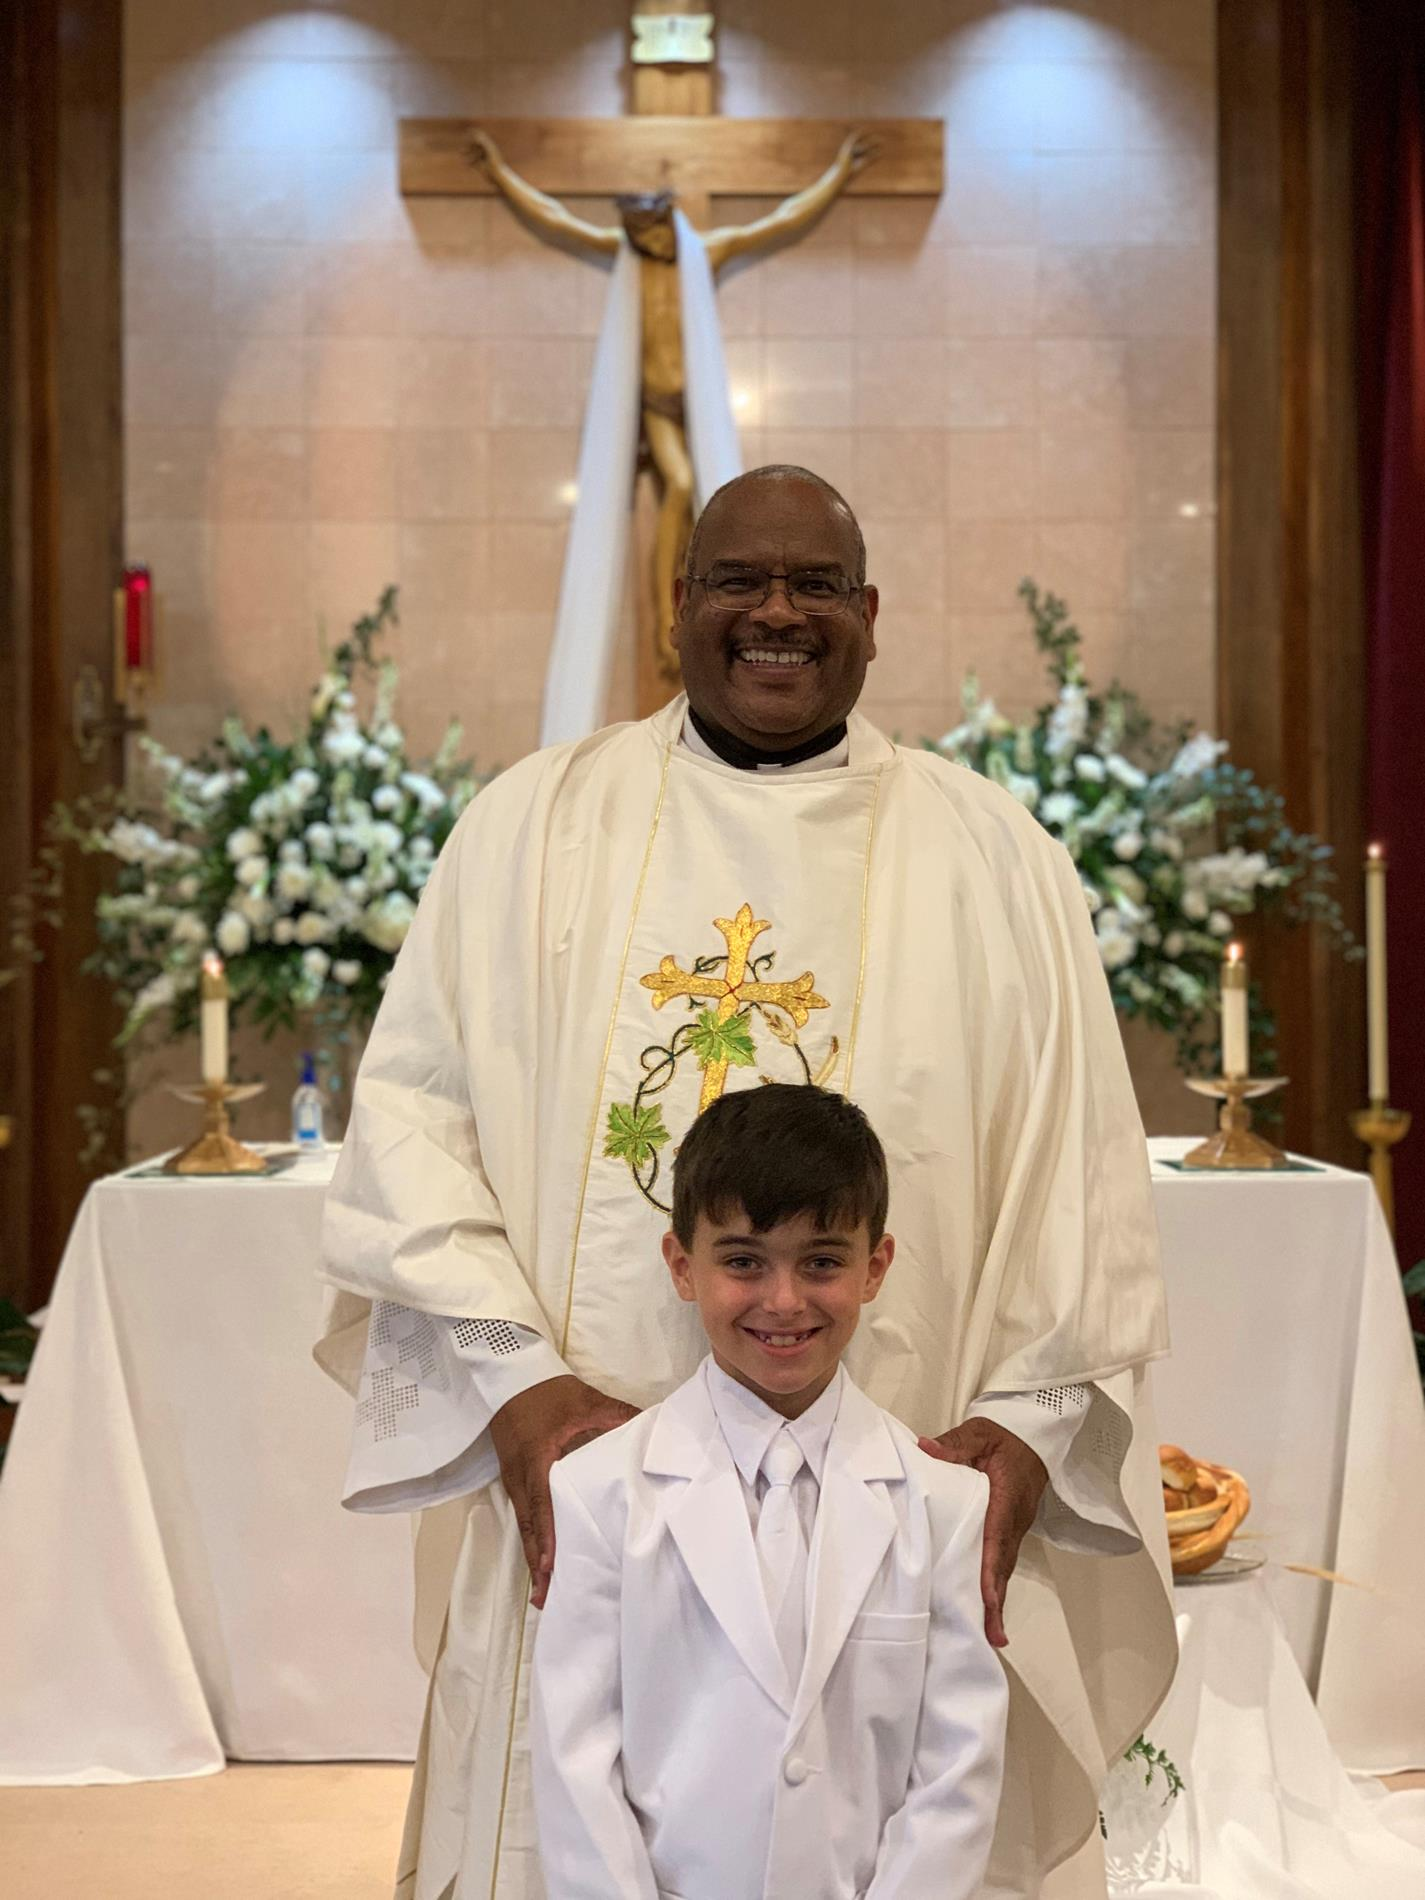 Fr. Vernon and young man